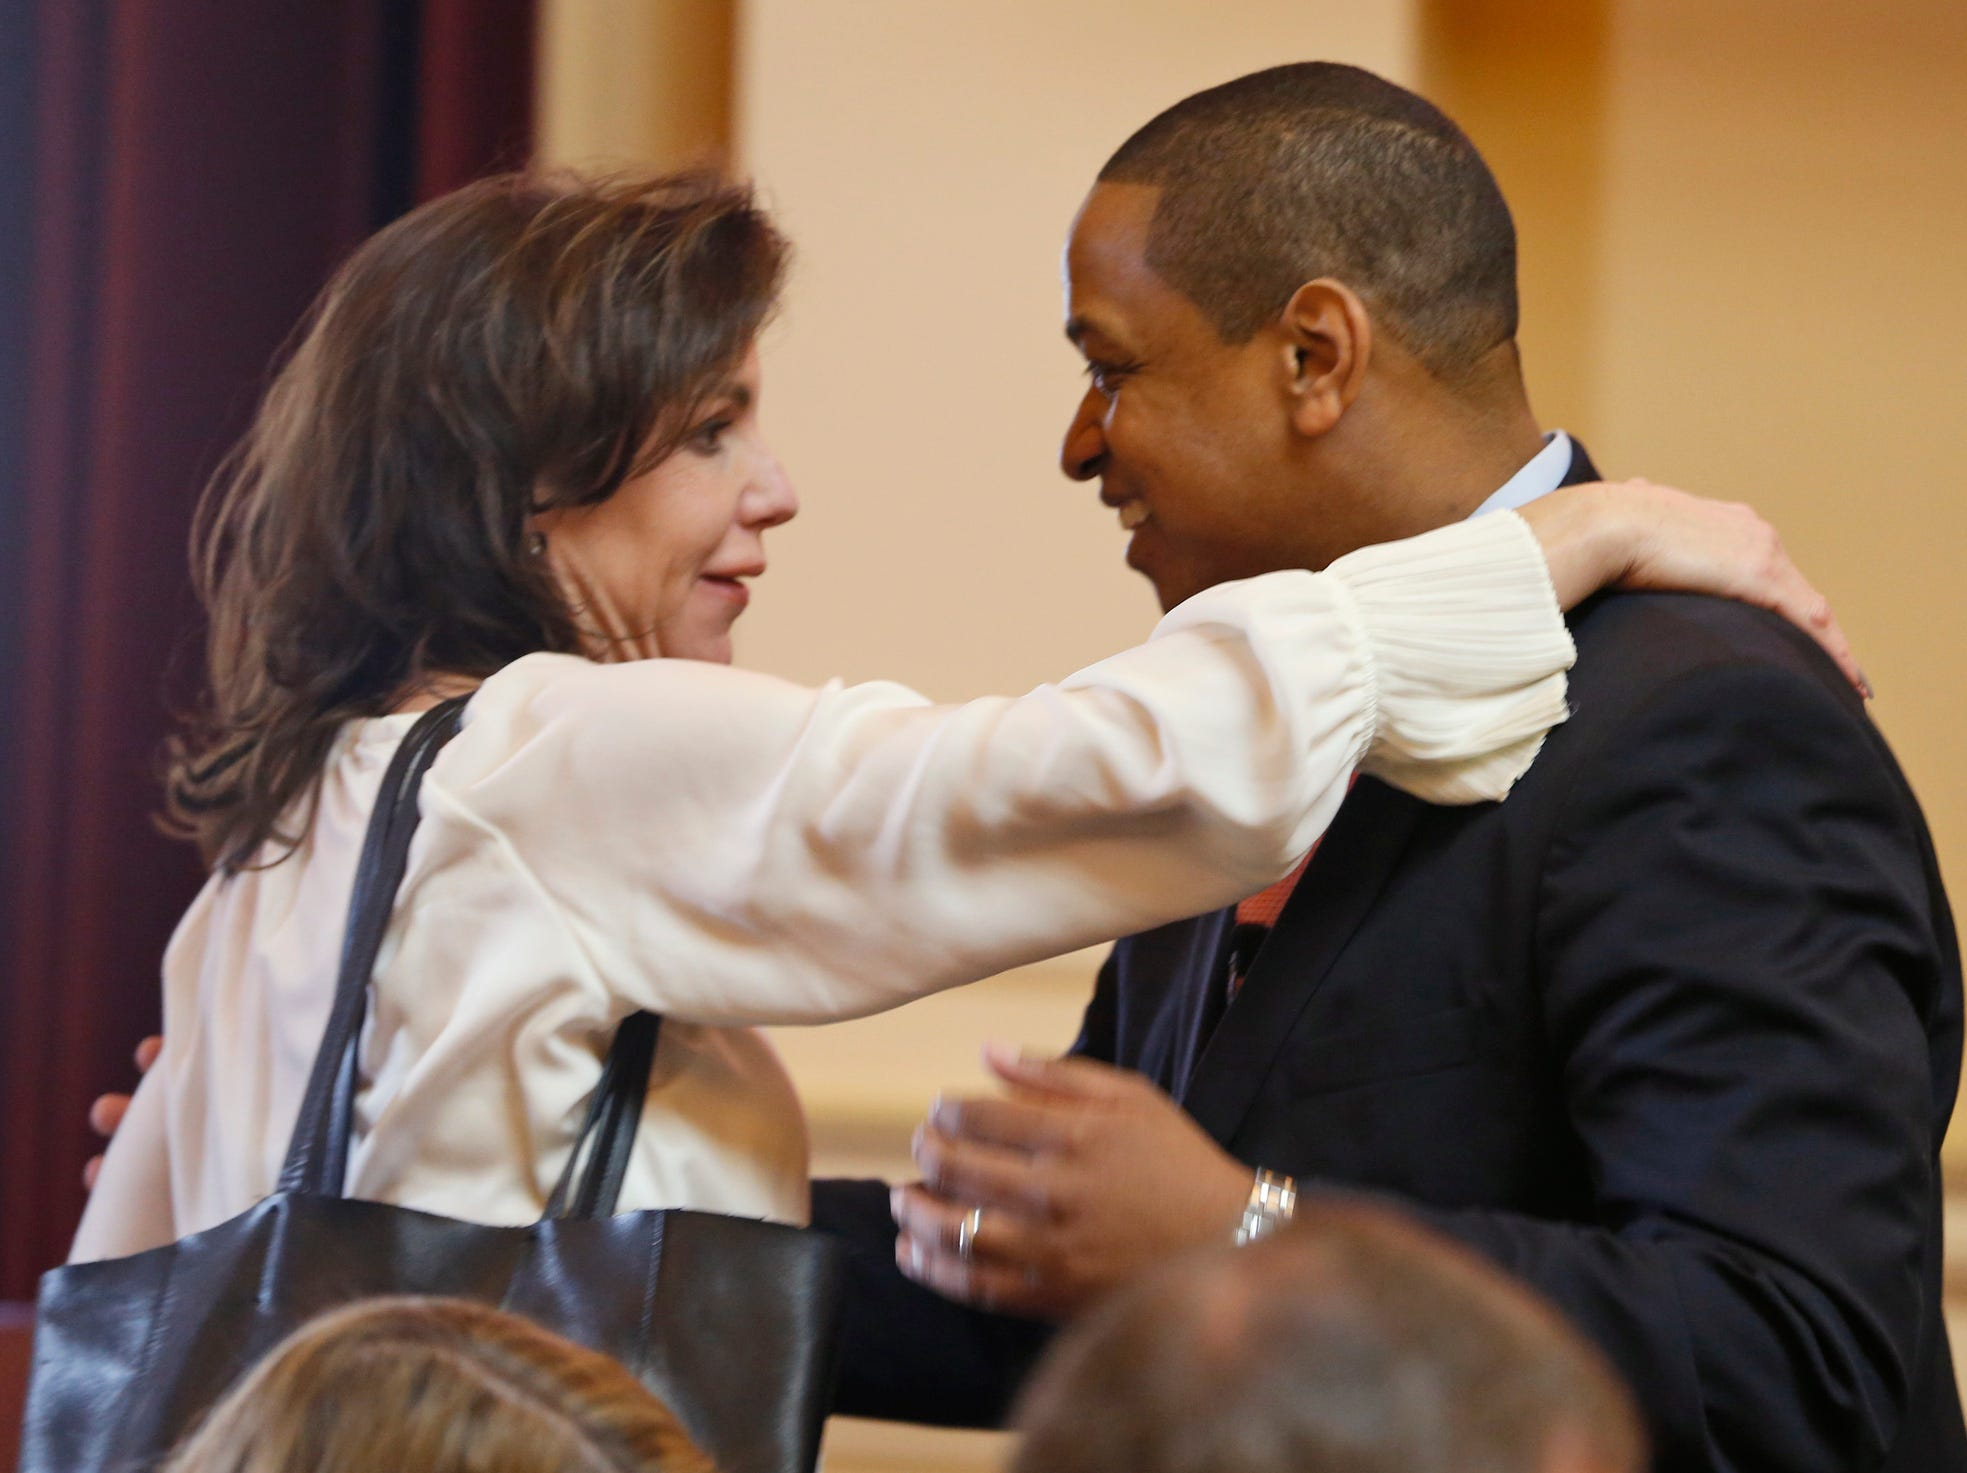 Fairfax, right, gets a hug from State Sen. Jill Vogel, R-Fauquier, left, after he presided over his first Senate session at the Capitol in Richmond, Va., on  Jan. 15, 2018. Vogel lost last year's election to Fairfax.